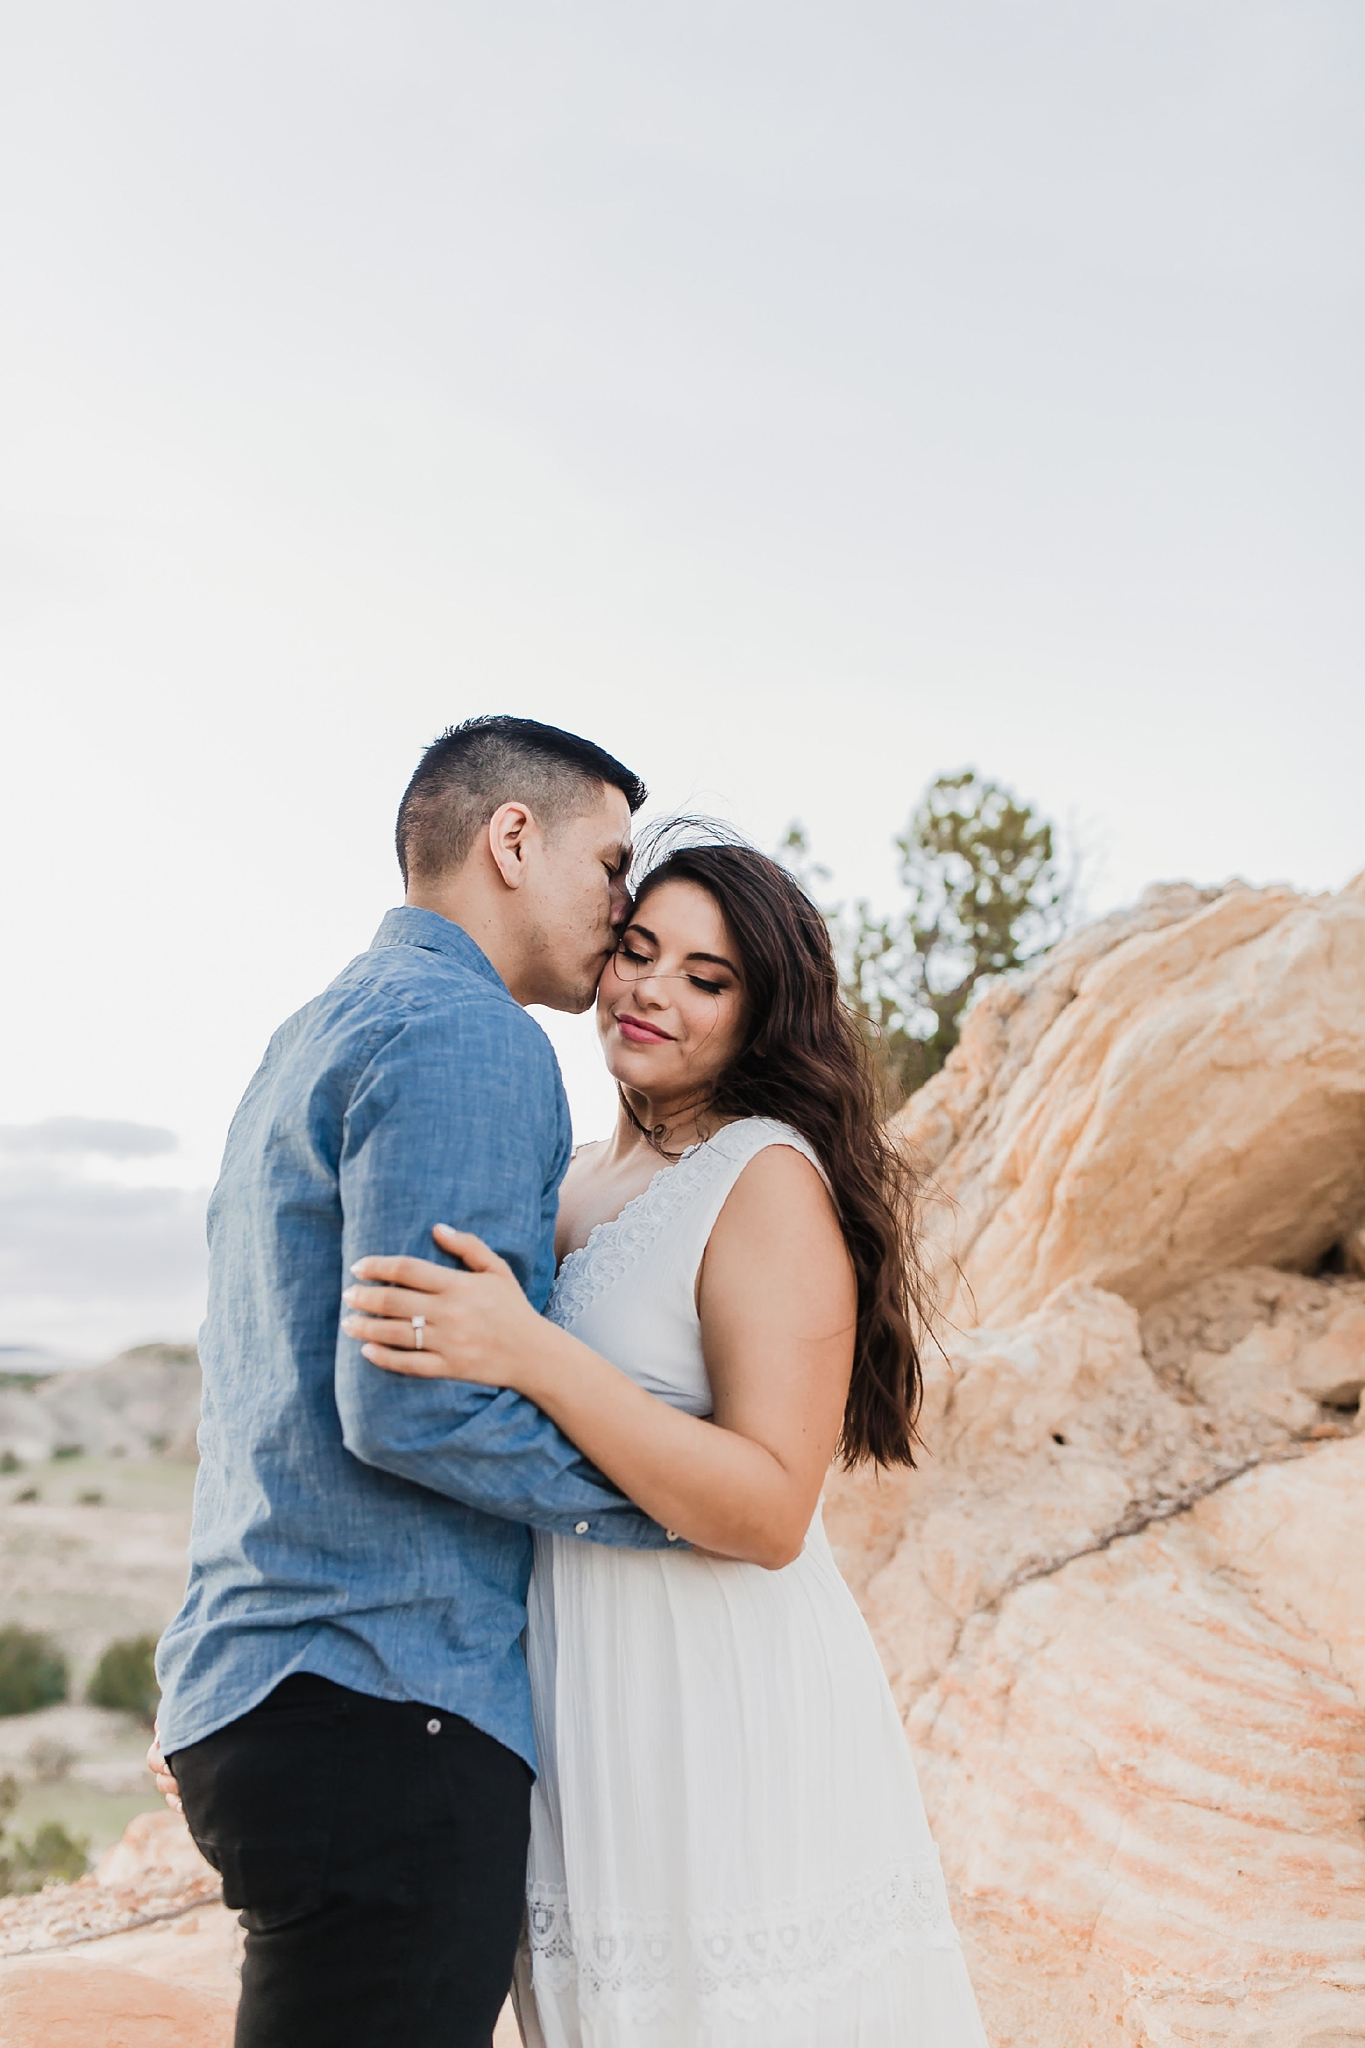 Alicia+lucia+photography+-+albuquerque+wedding+photographer+-+santa+fe+wedding+photography+-+new+mexico+wedding+photographer+-+new+mexico+wedding+-+new+mexico+engagement+-+white+mesa+engagement+-+desert+engagement_0003.jpg